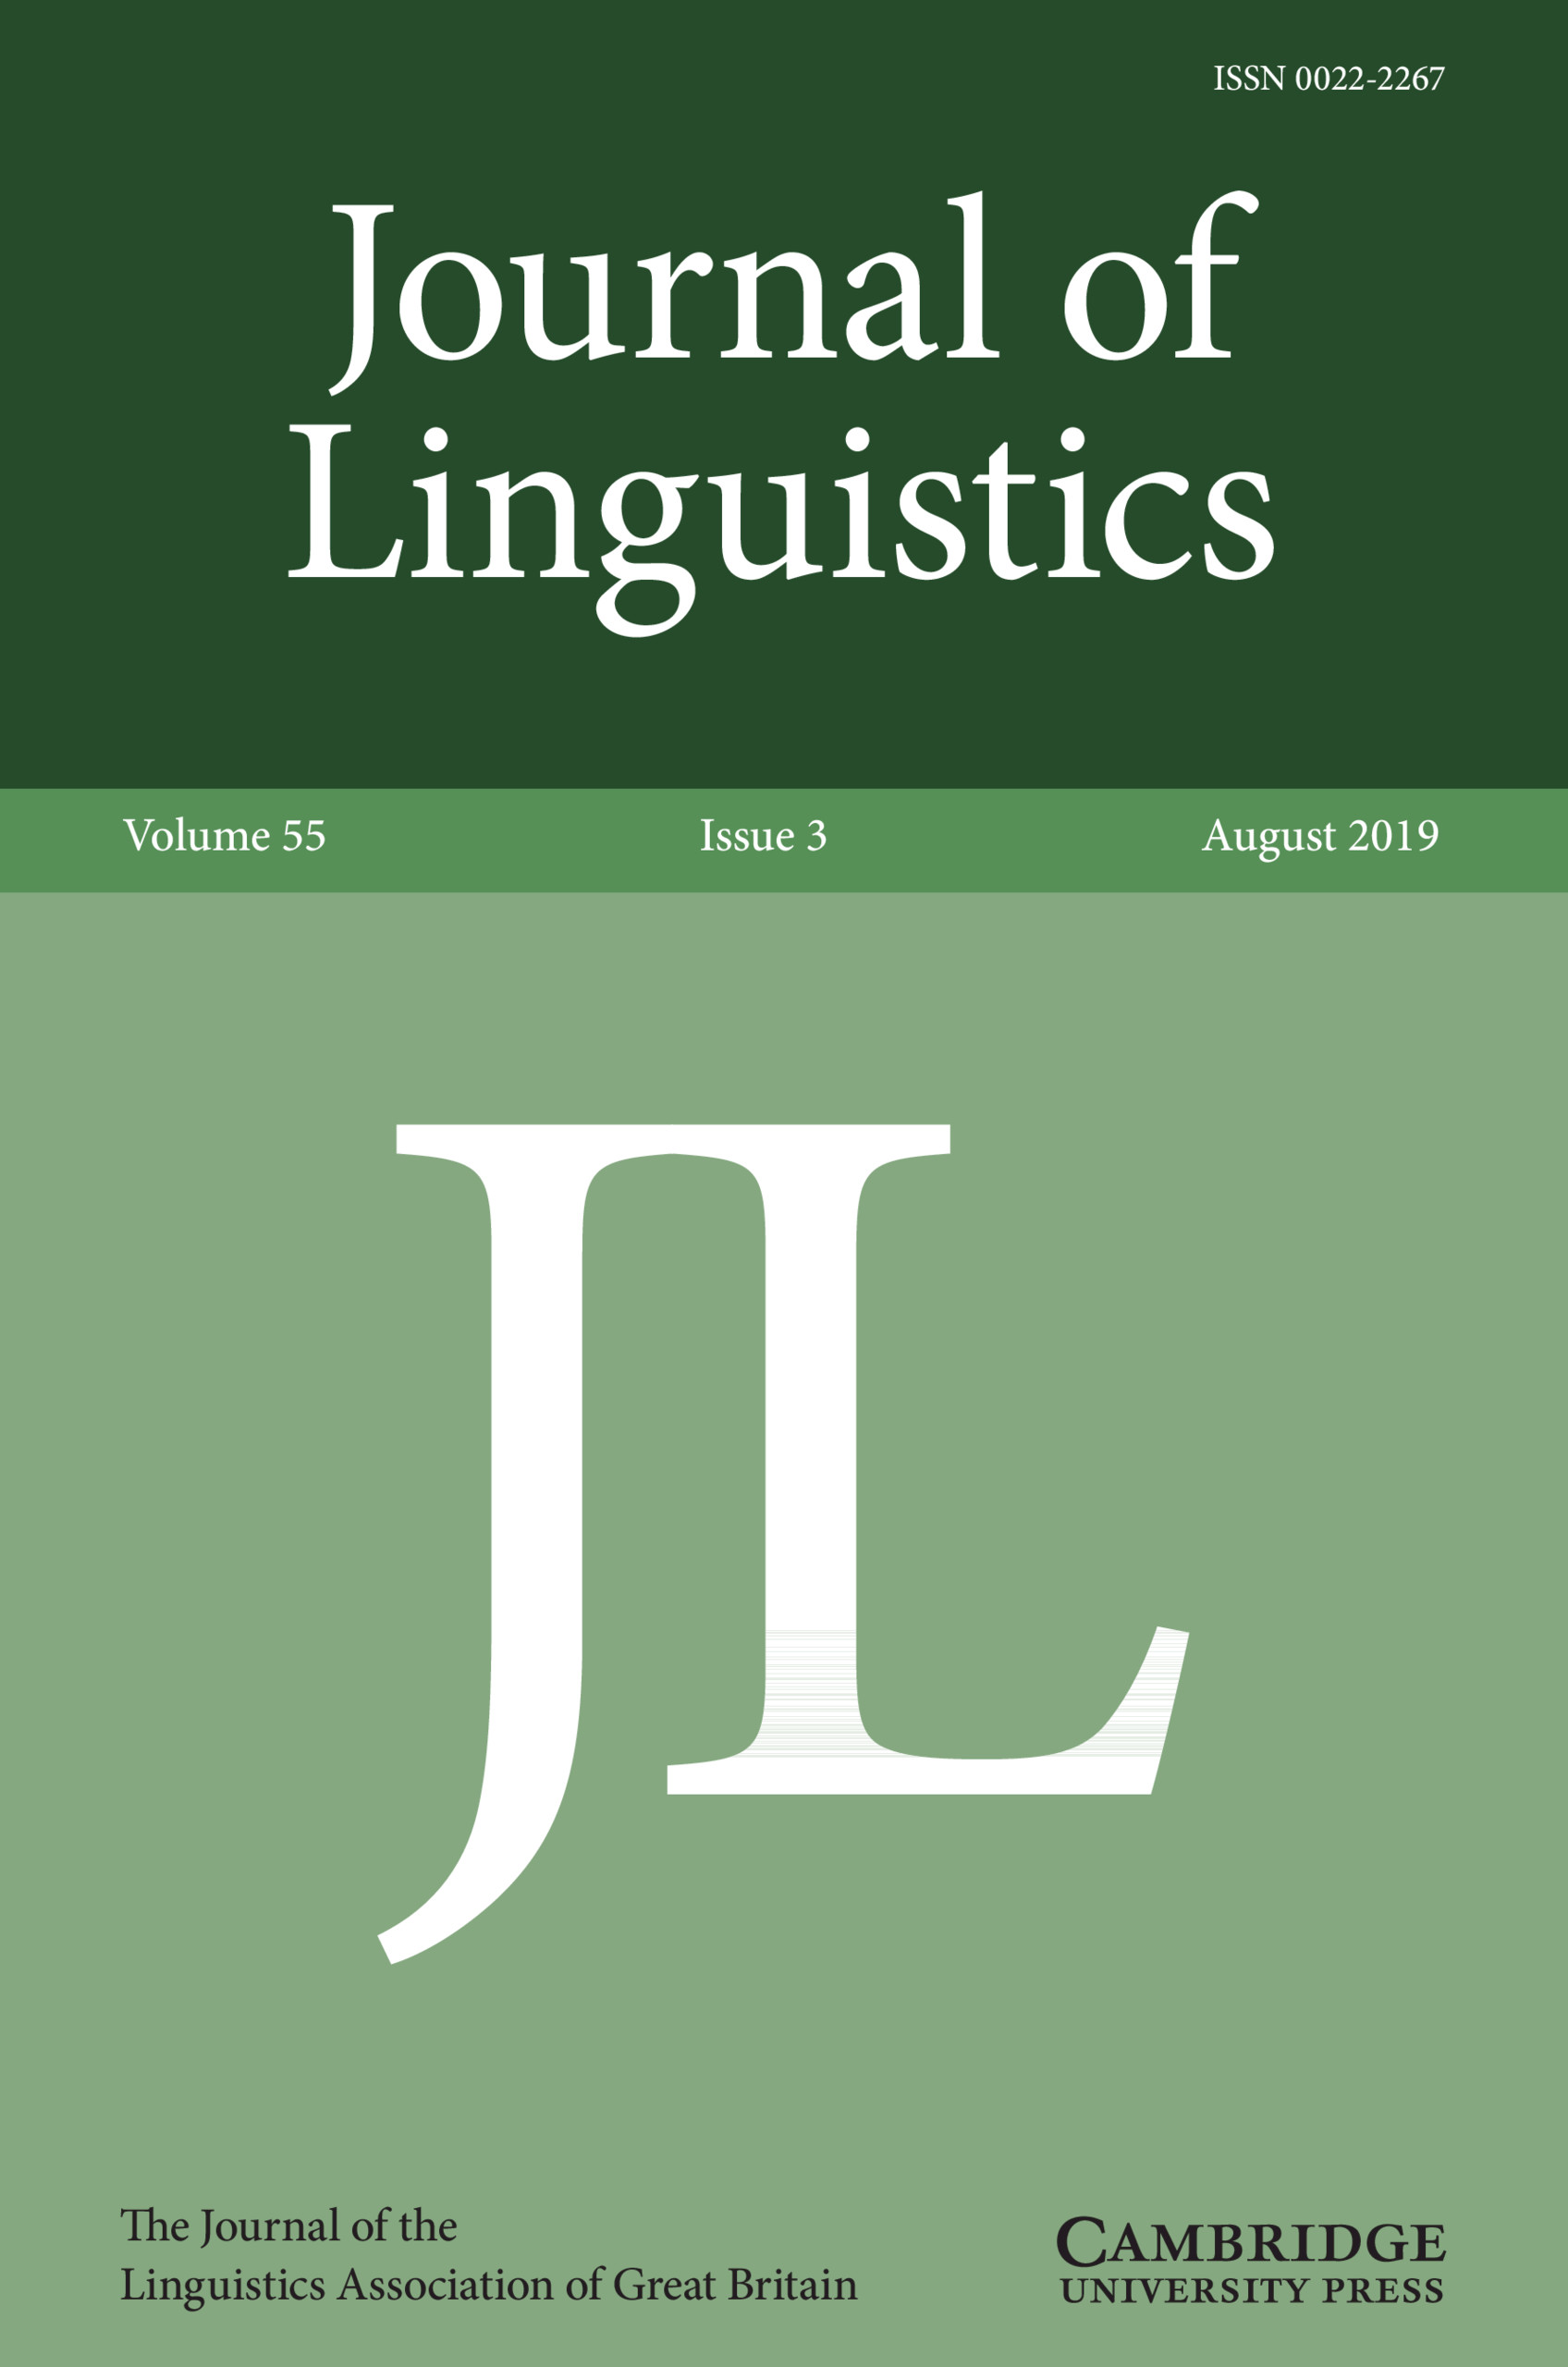 Journal Cover - Title in white lettering in a dark green banner above the large letters JL in white text against a light green background.